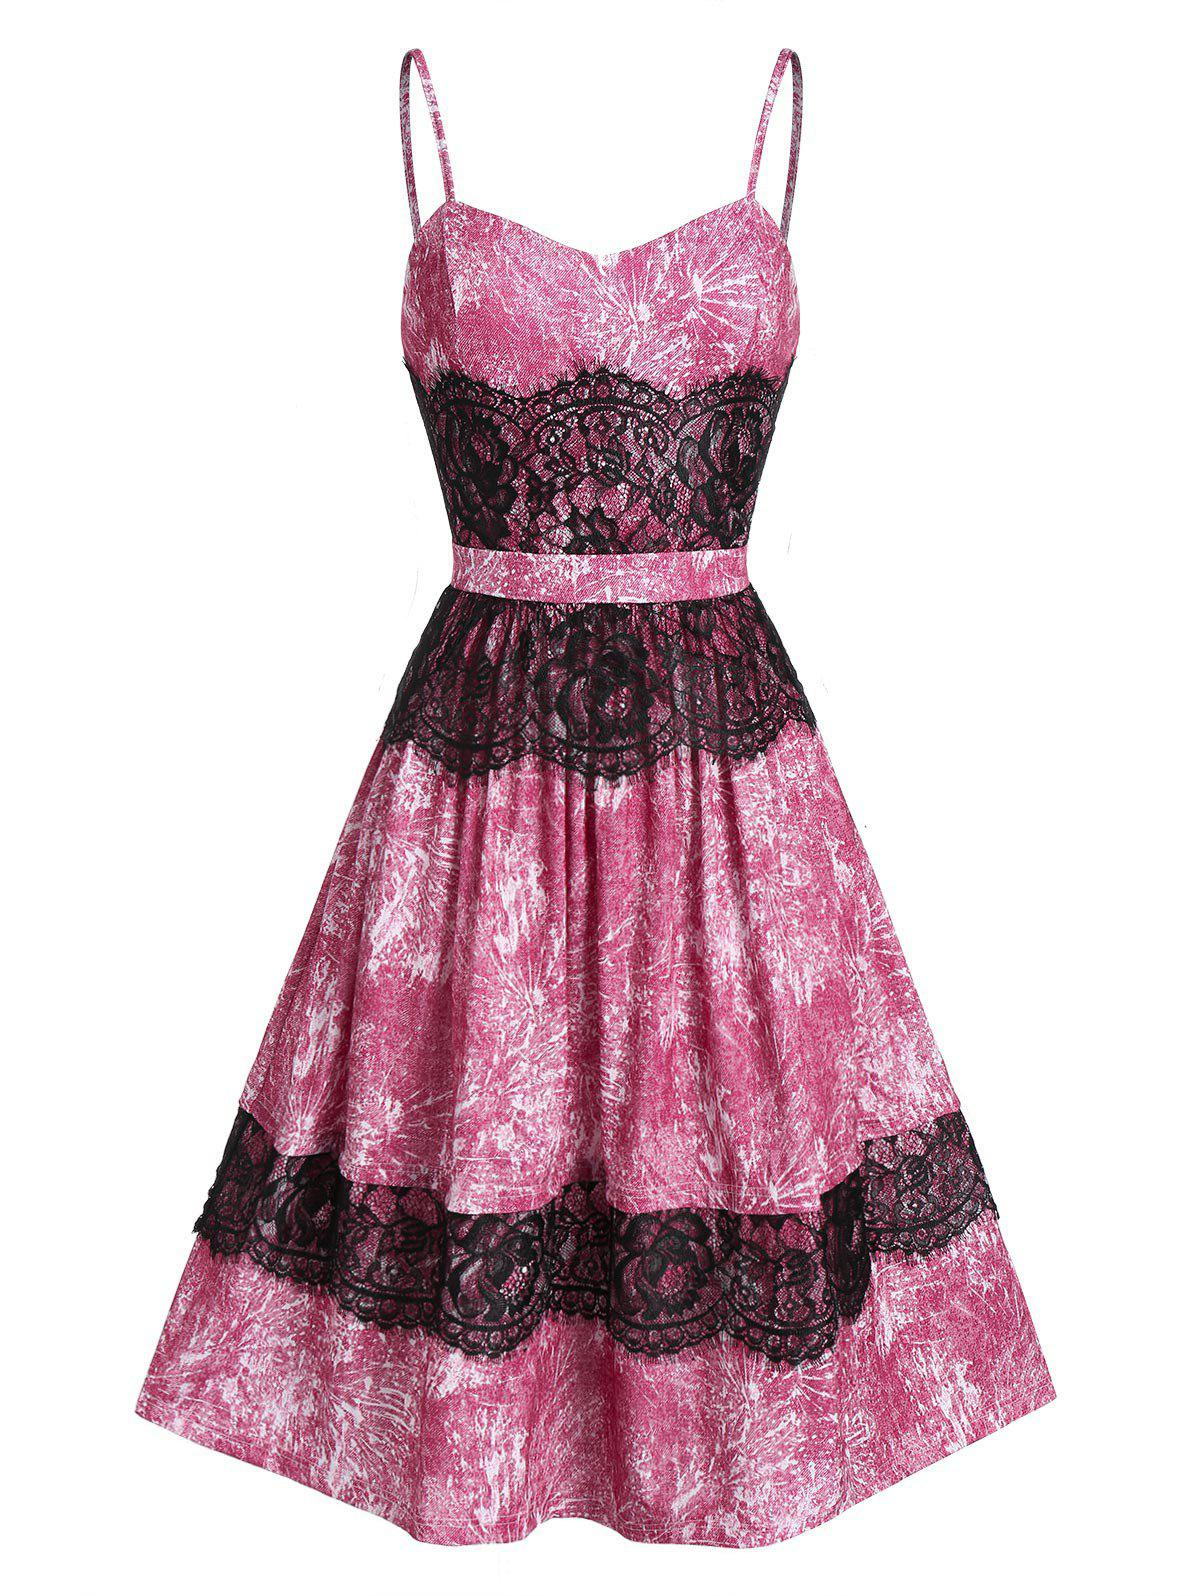 Store Sweetheart Neck A Line Lace Strap Dress